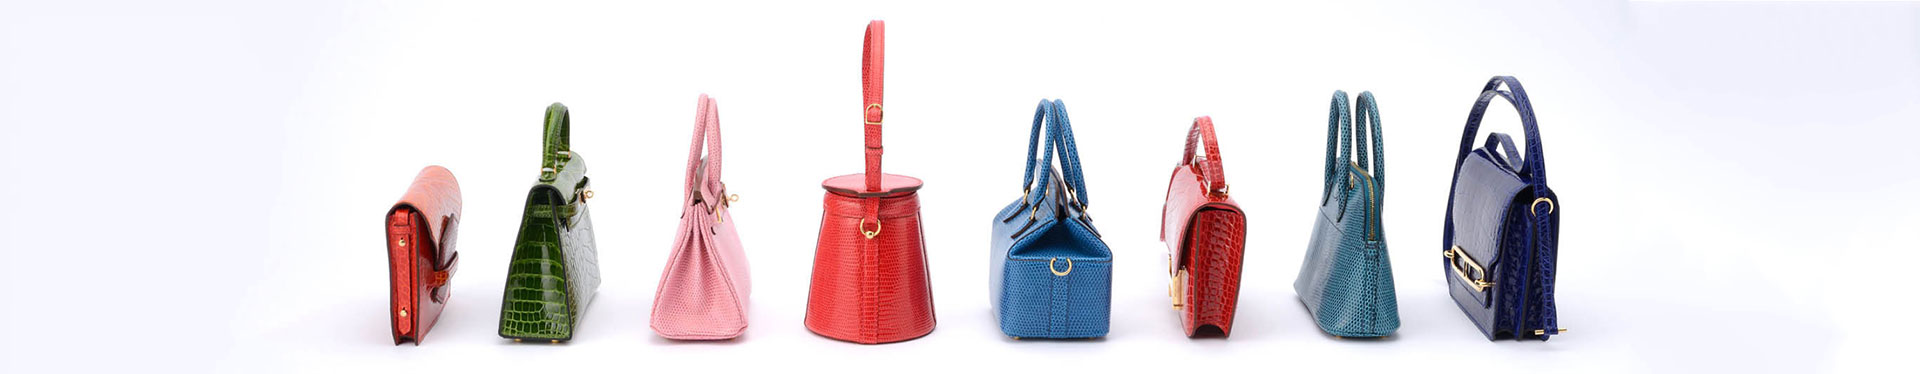 handbags-and-accessories-banner-FINAL_22_1_20170104110618.jpg